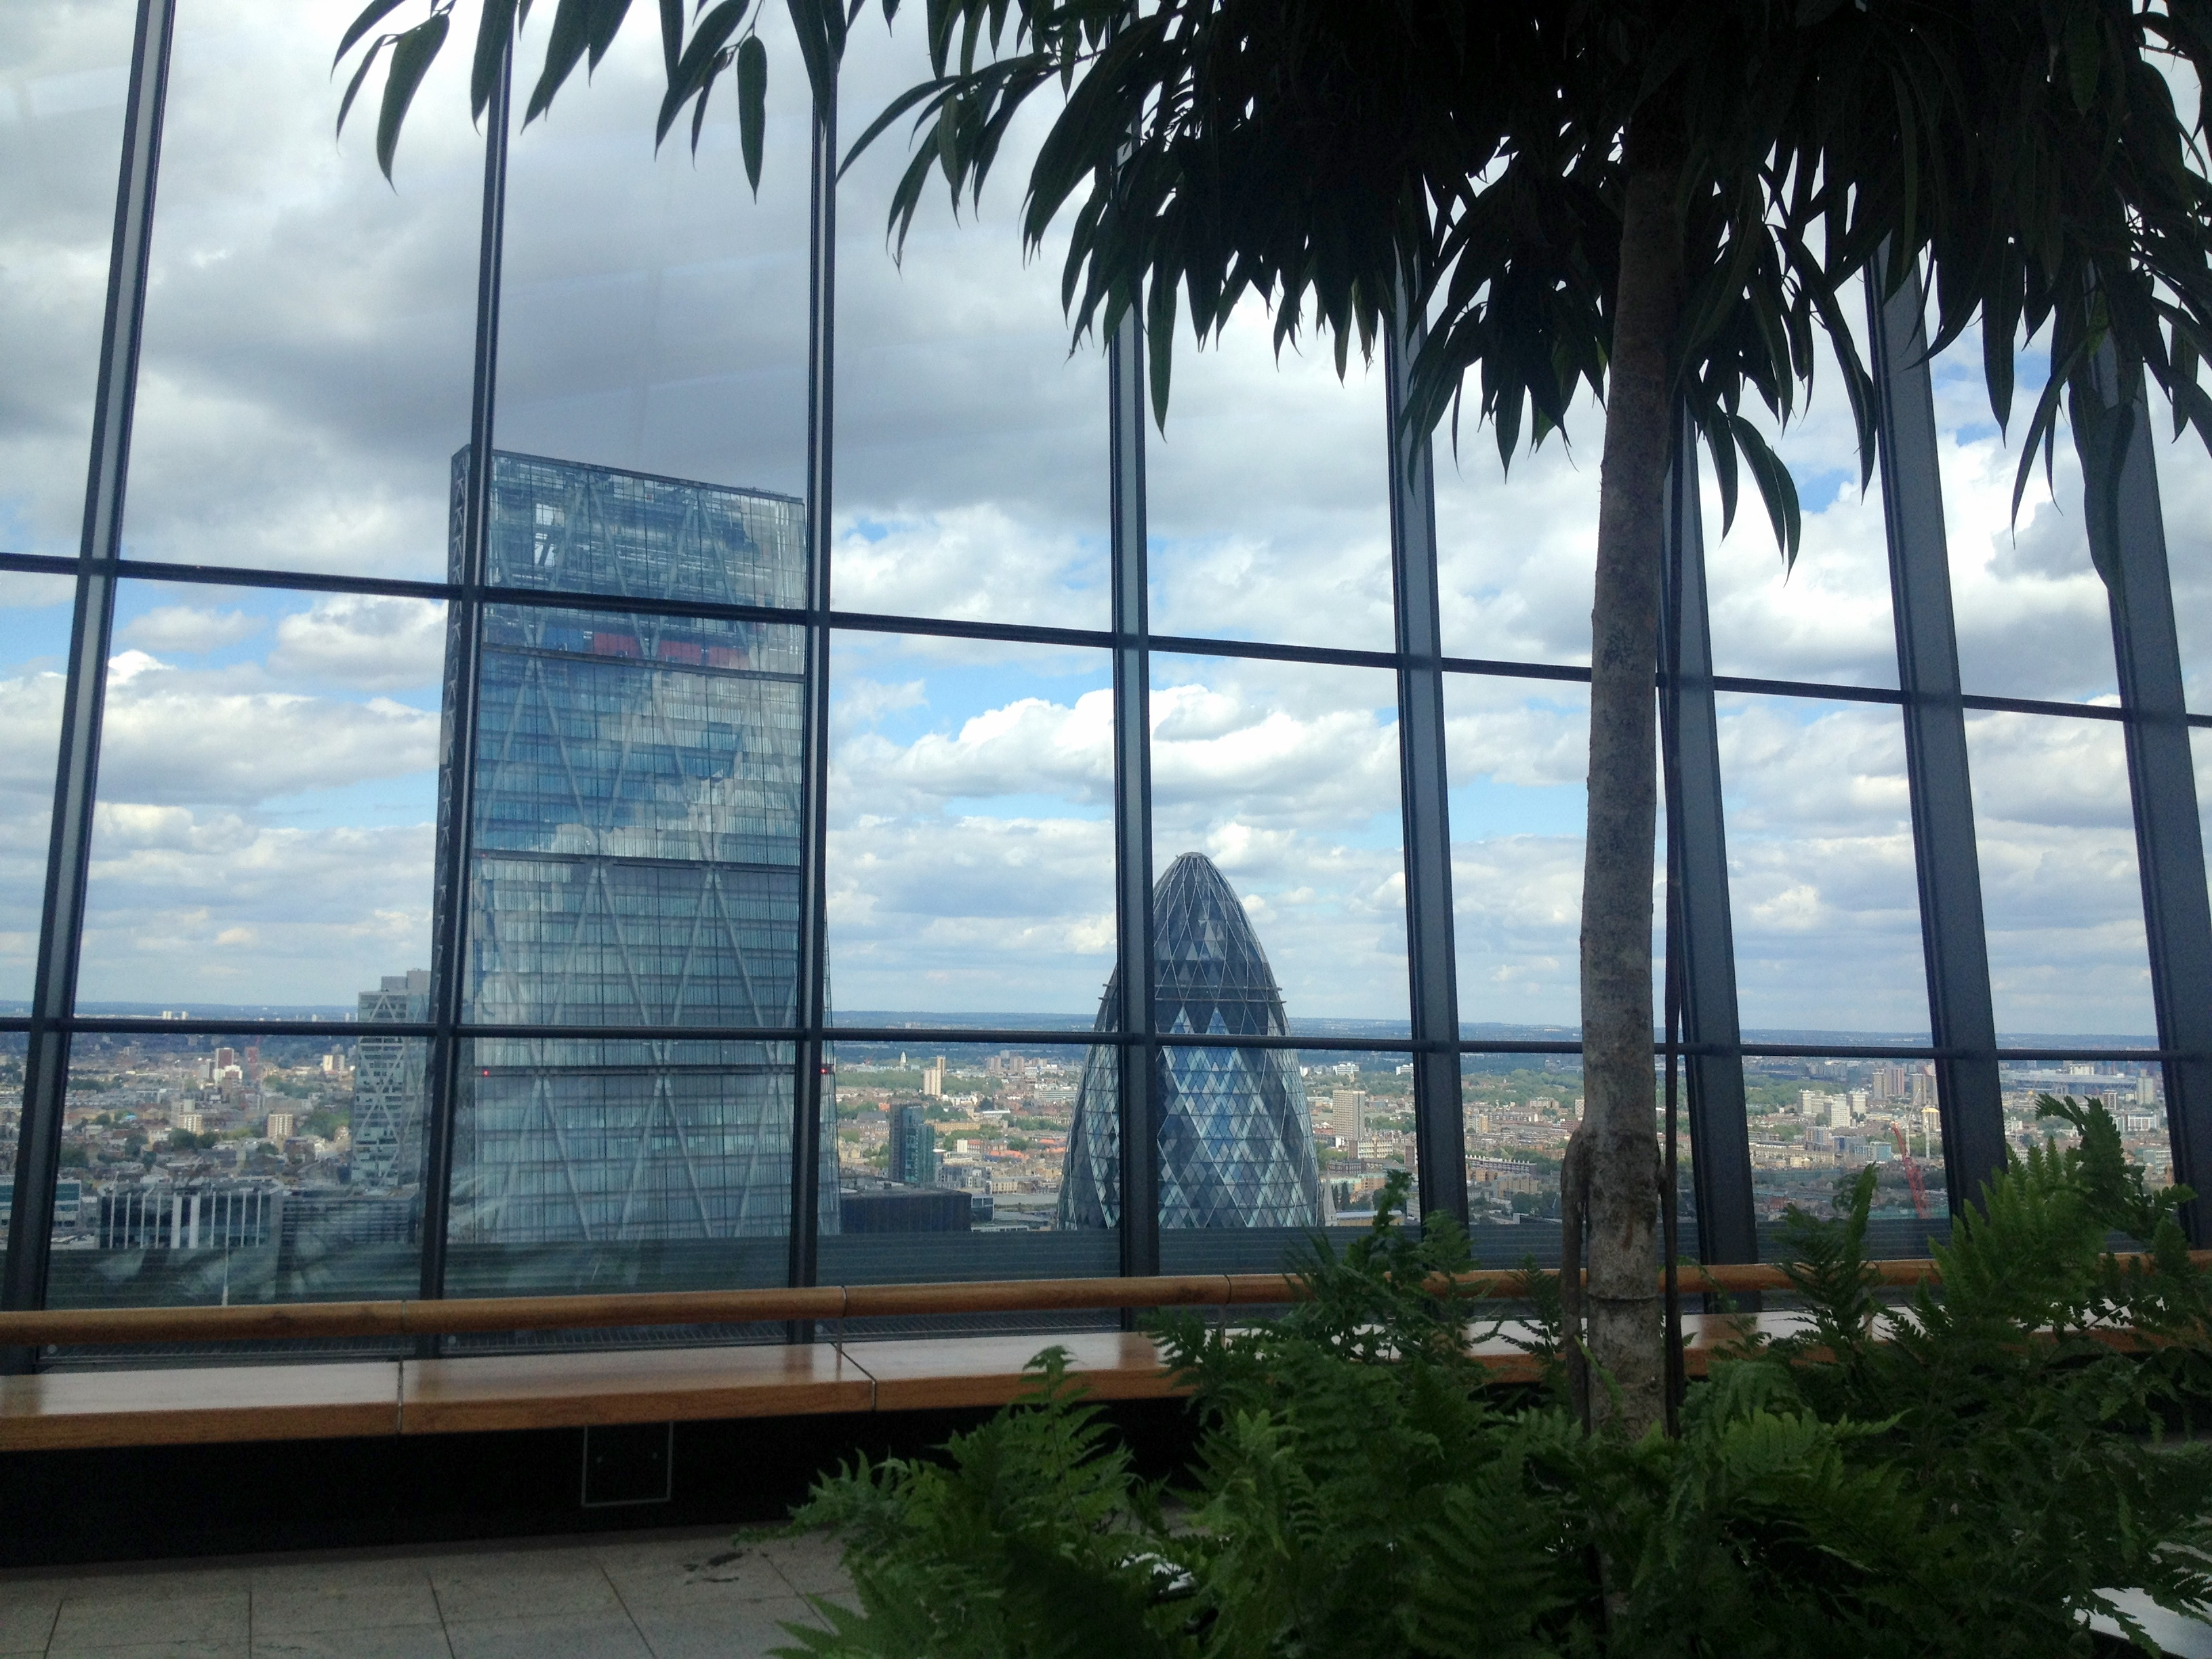 View outside Walkie Talkie building London Sarah Blinco